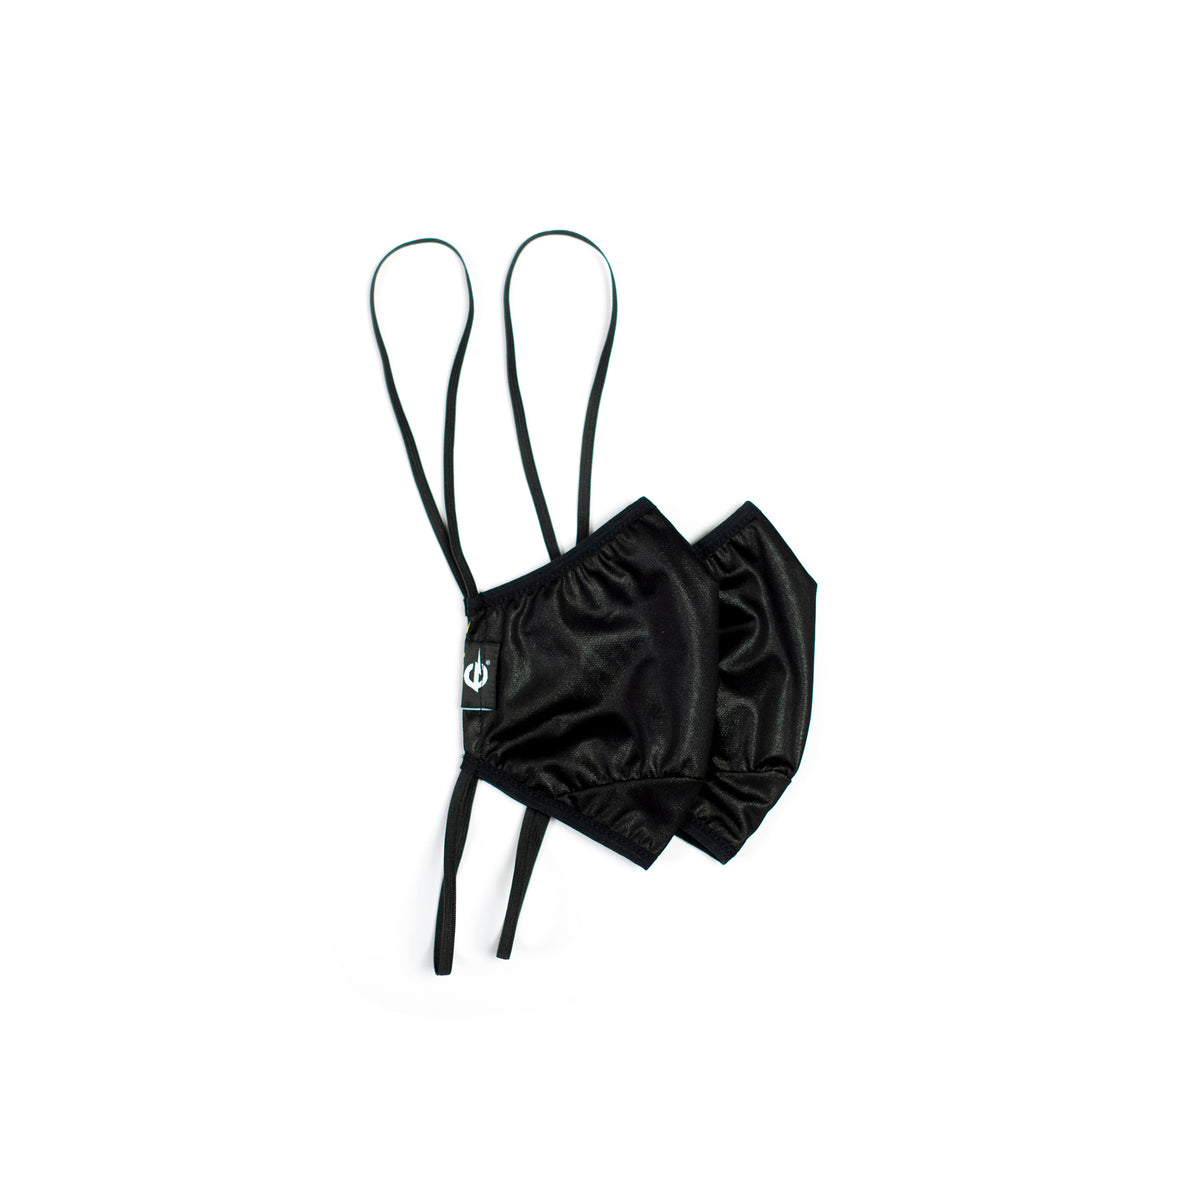 6FT PLEASE - 3 LAYER MASK (2 PACK)